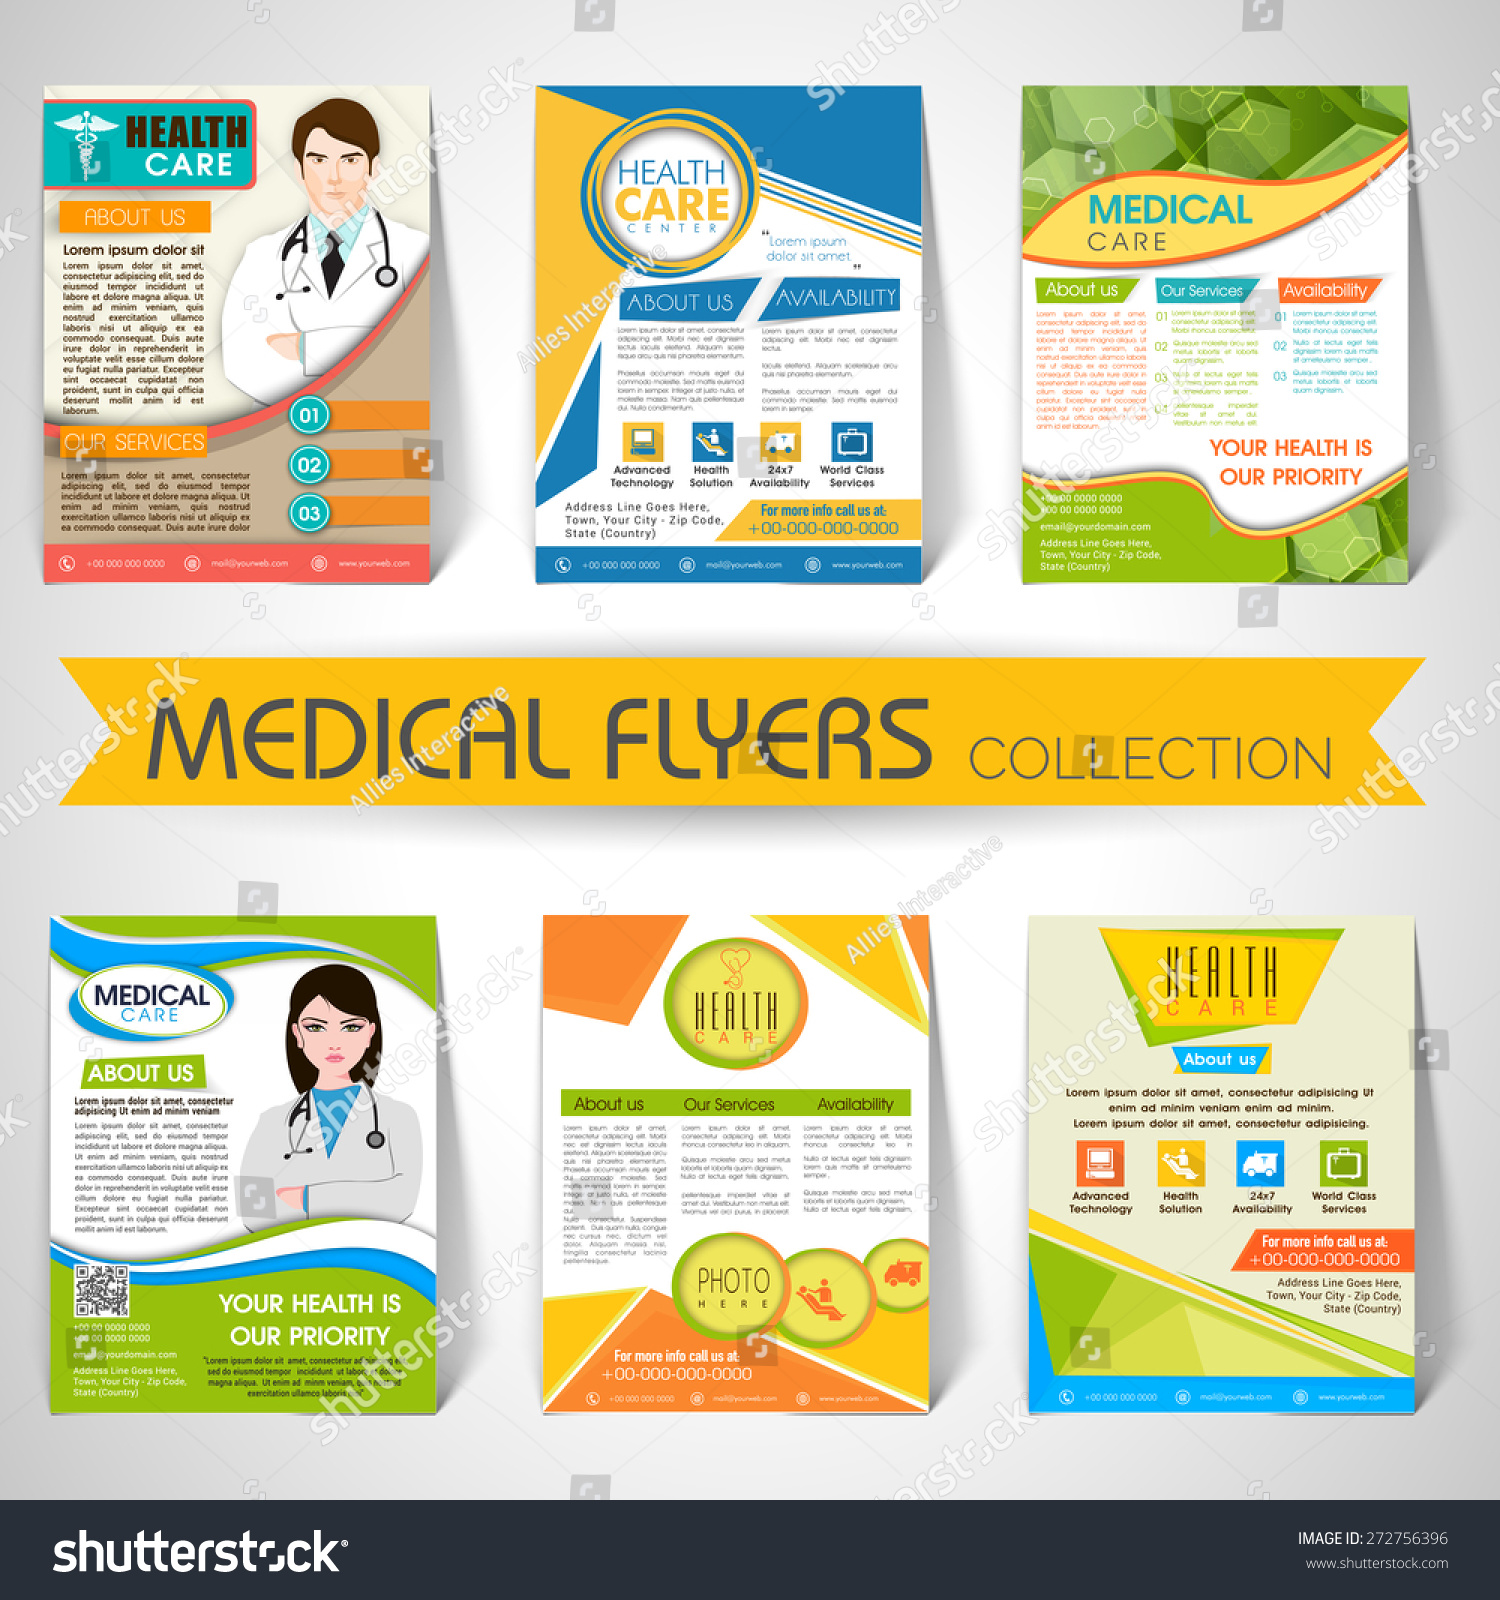 collection stylish flyers templates banners medical stock vector collection of stylish flyers templates or banners for medical and health care concept